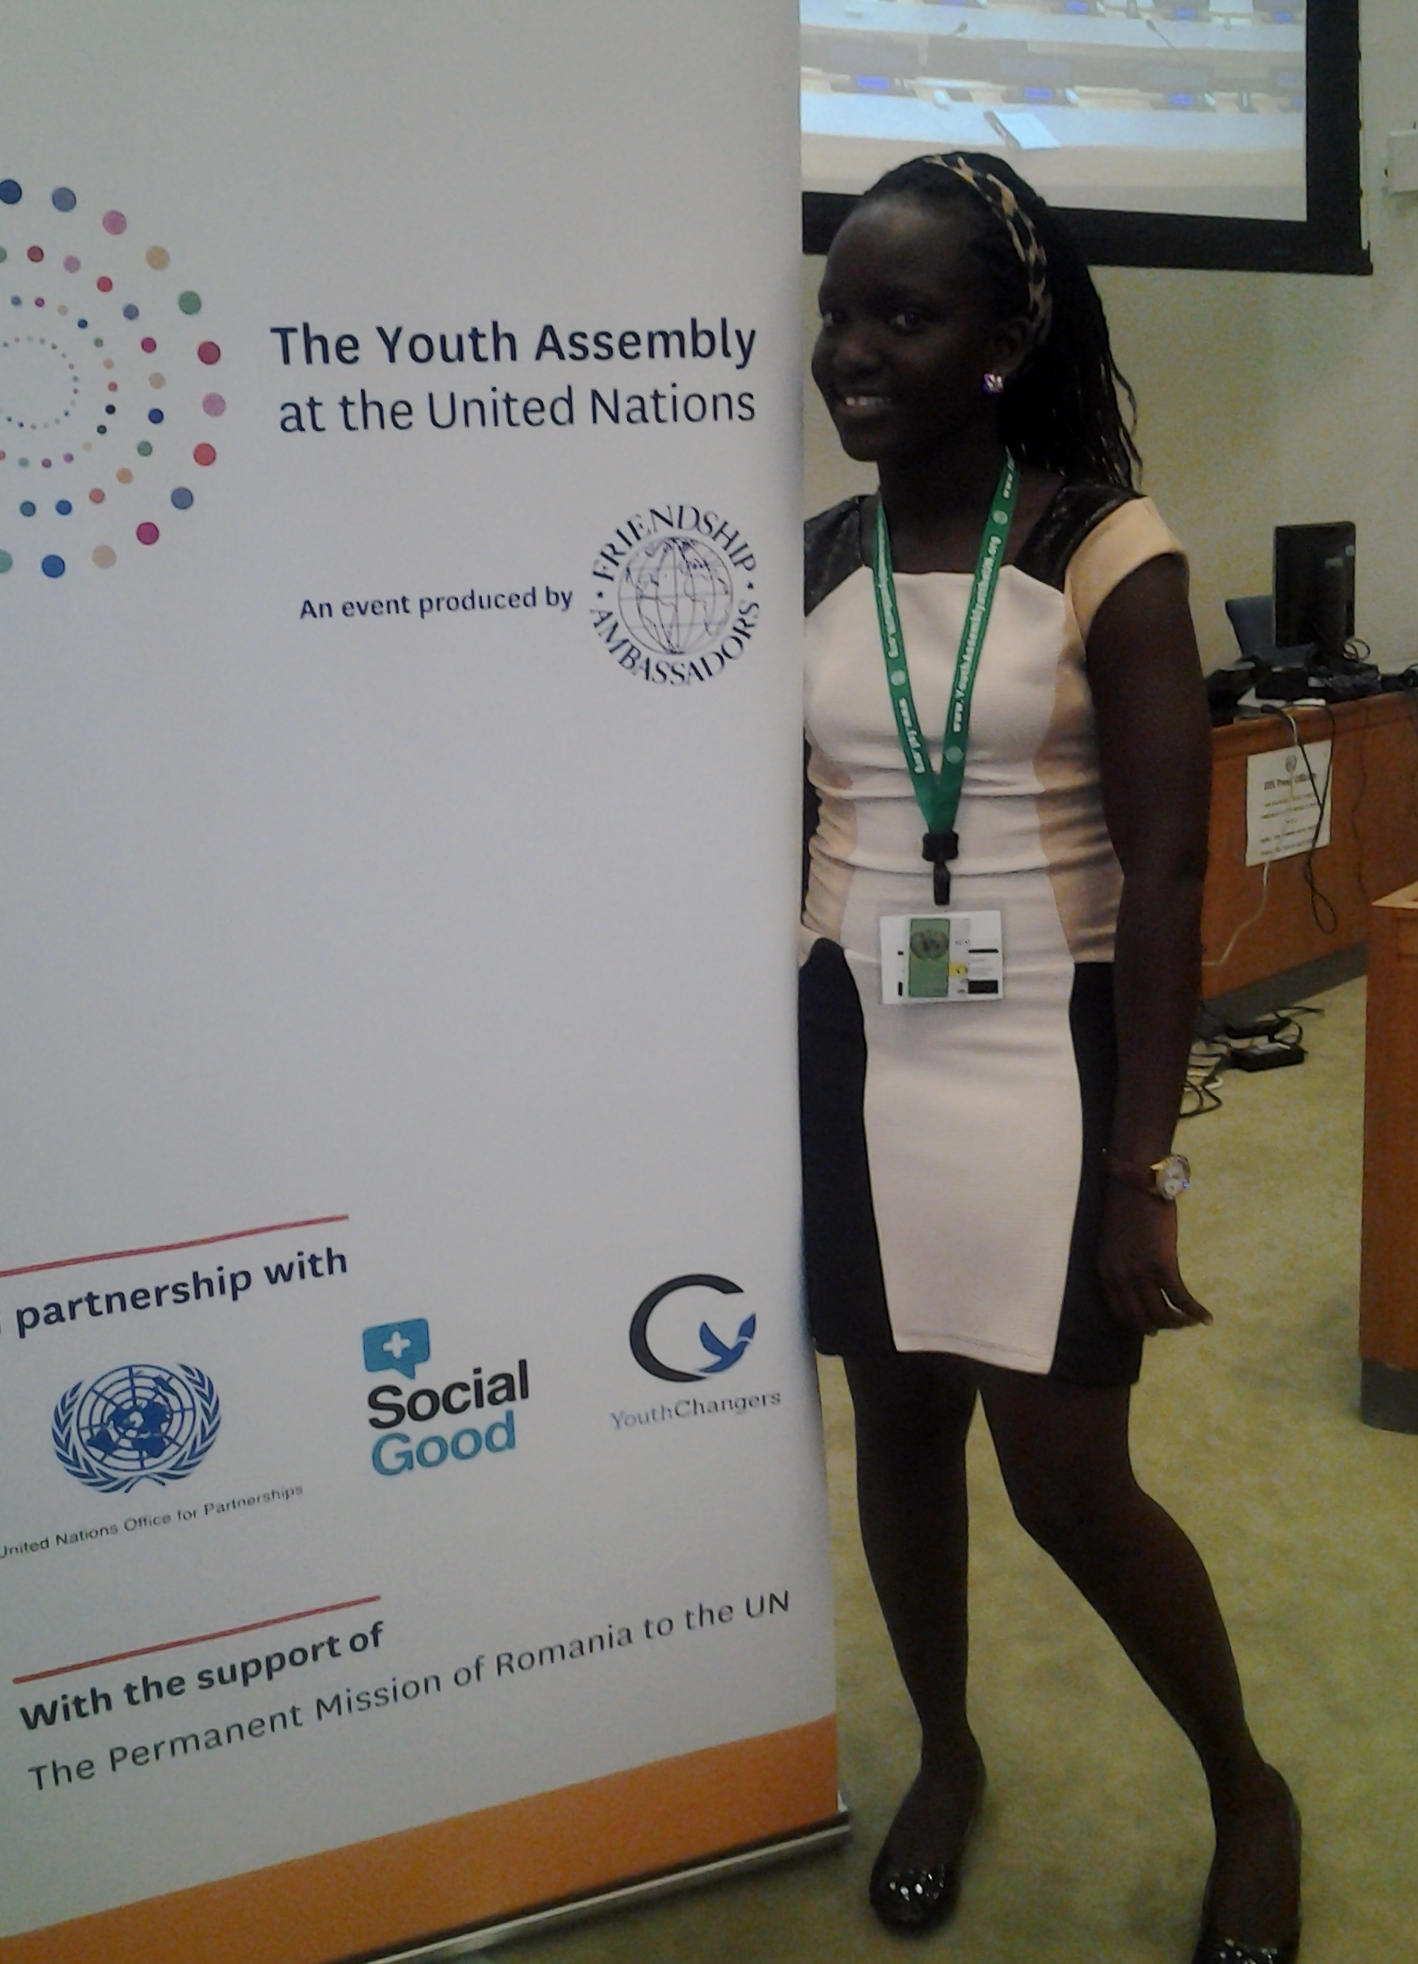 UN event showed young people are doing amazing things in their communities